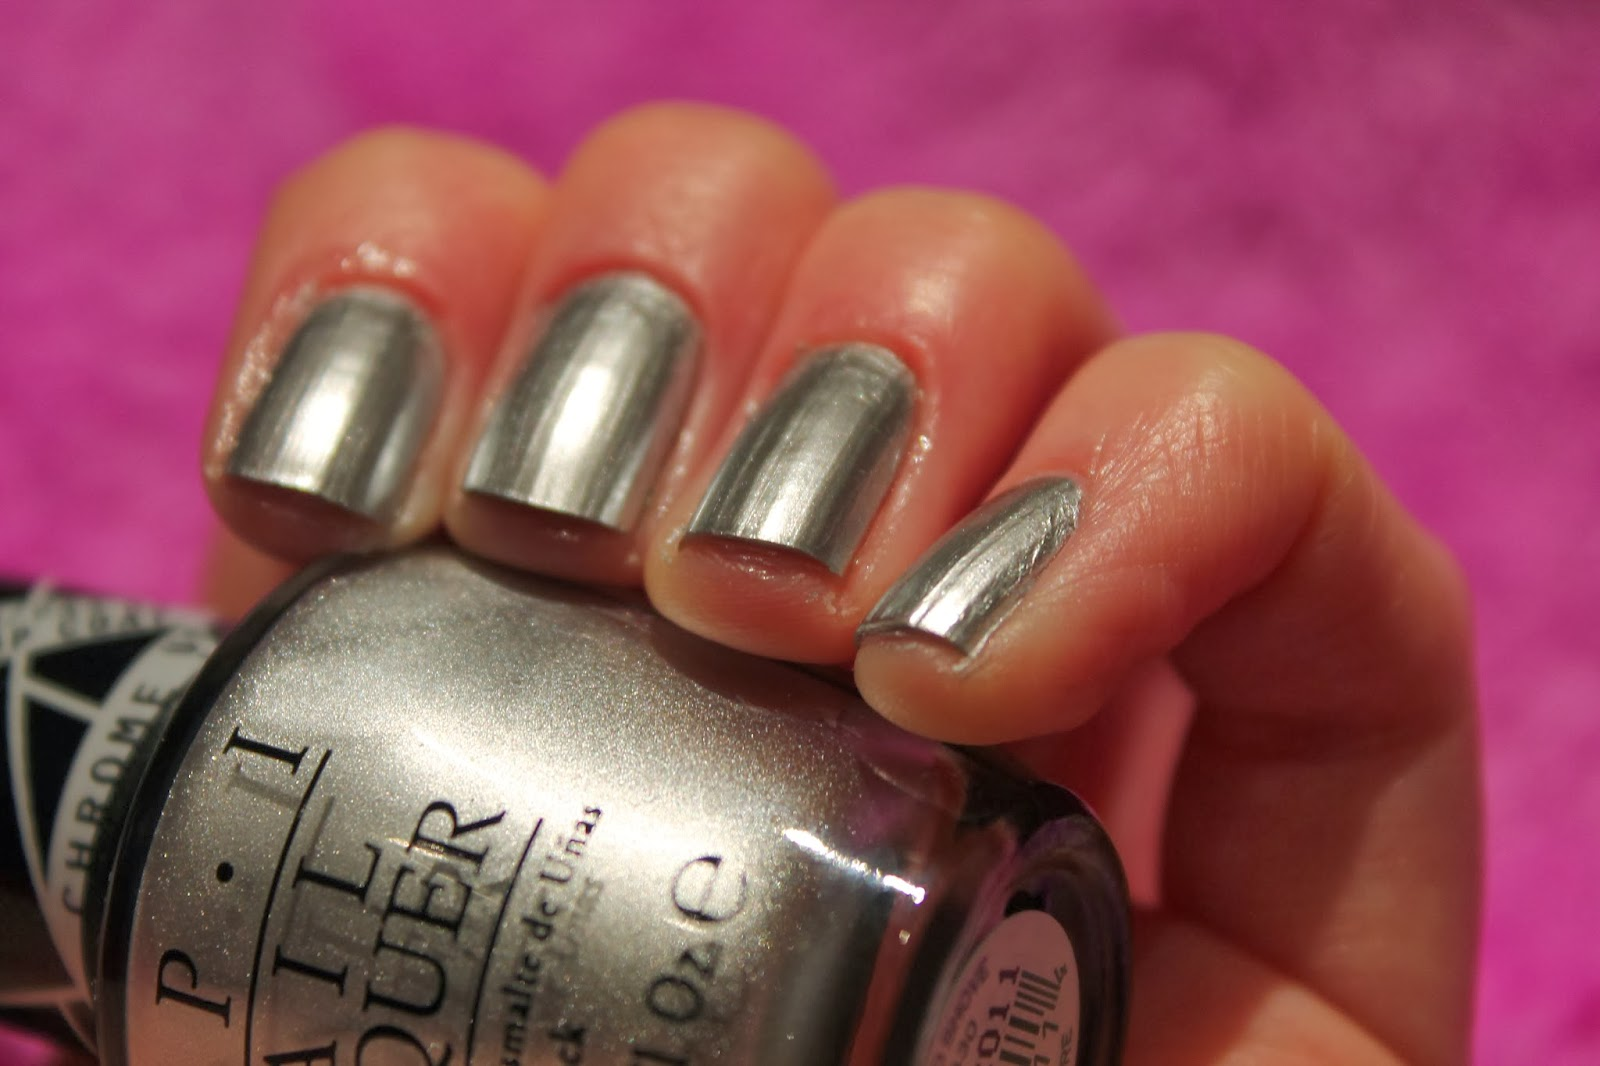 Gwen Stefani OPI Collection - Chrome Nail Polish Swatch